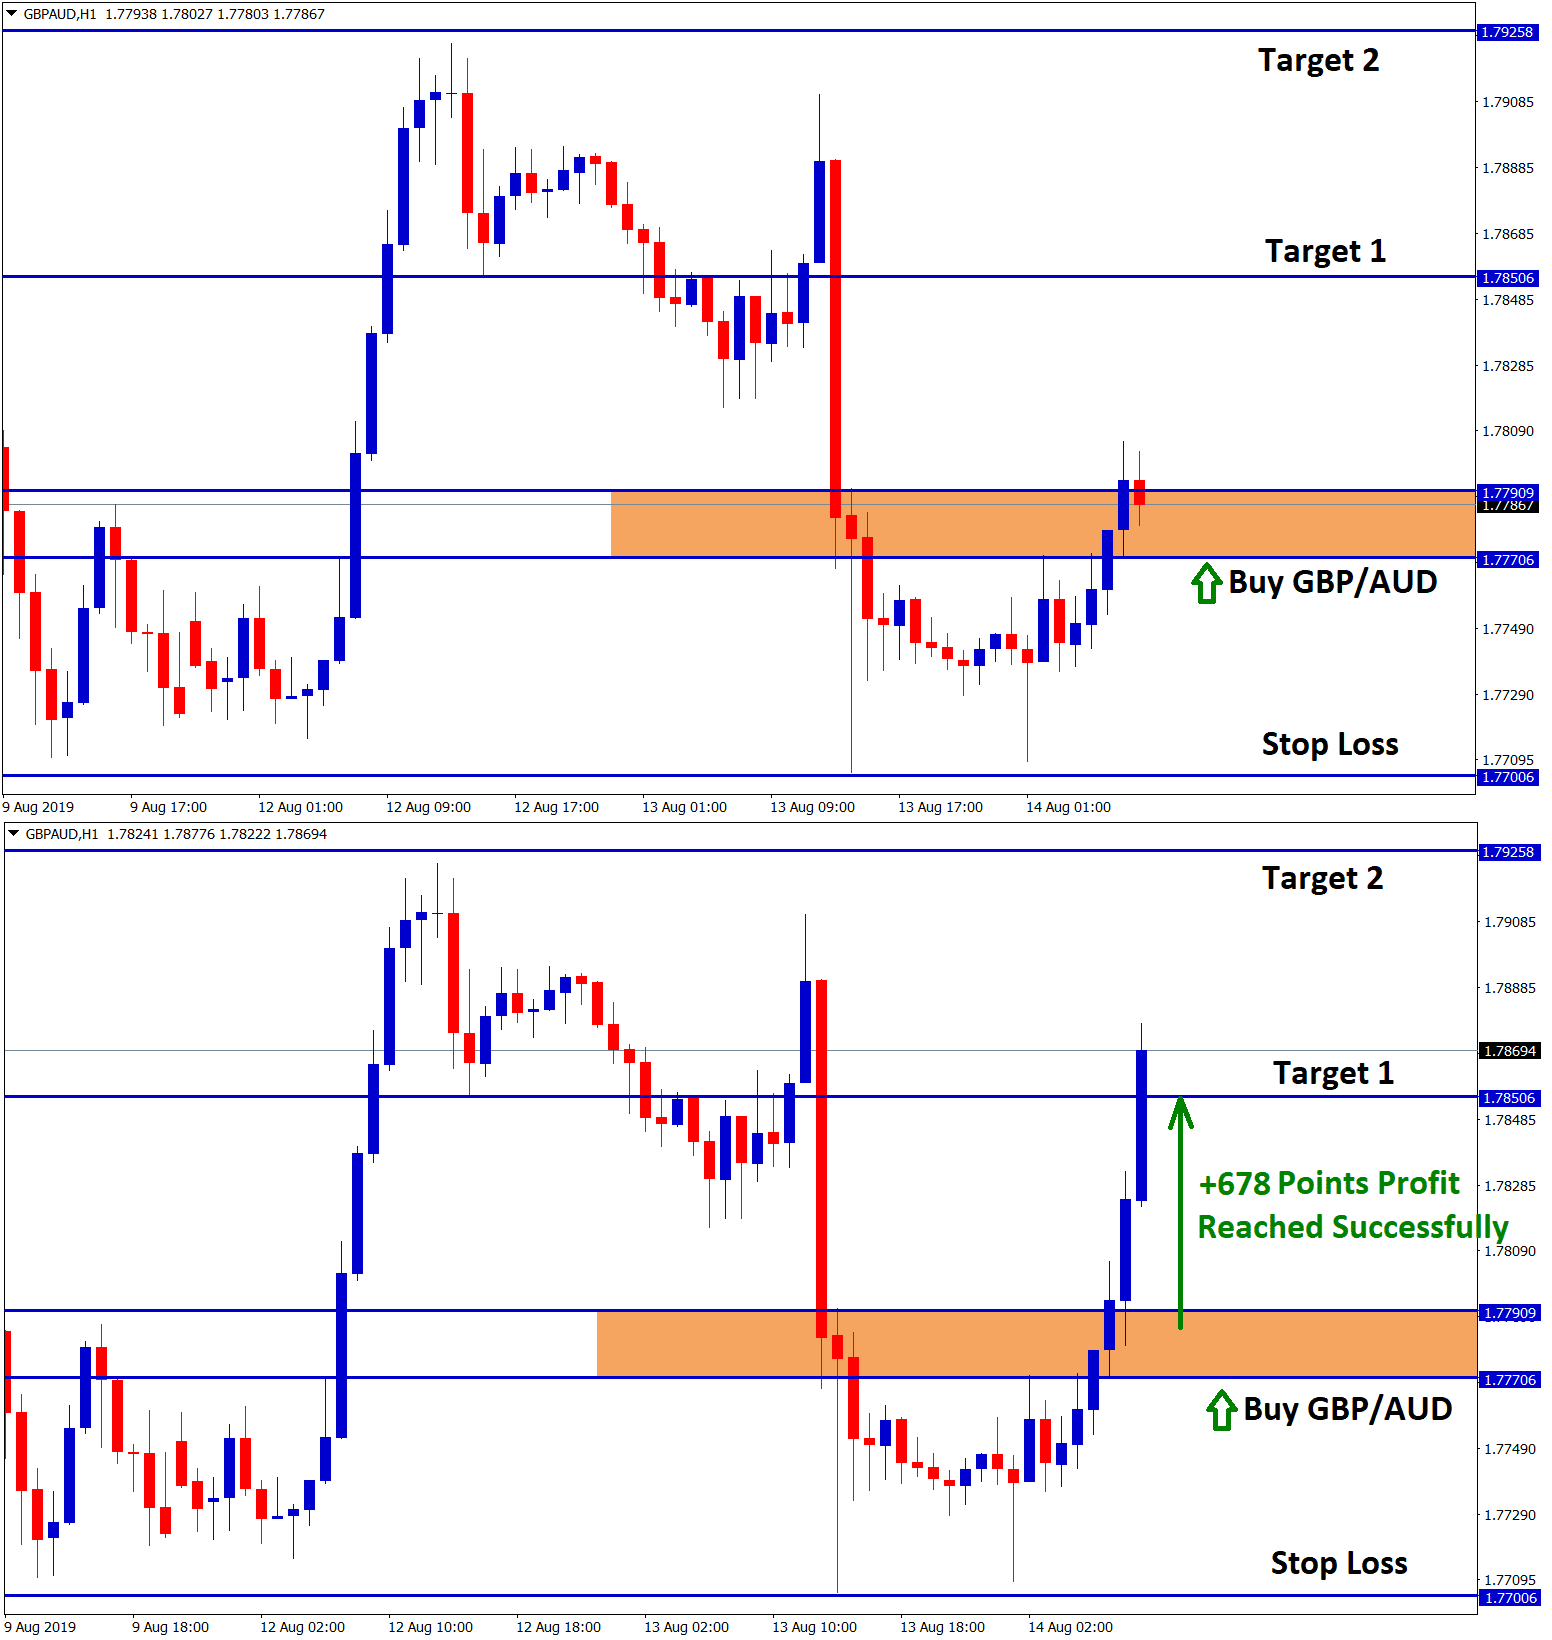 target 1 reached with +678 points profit